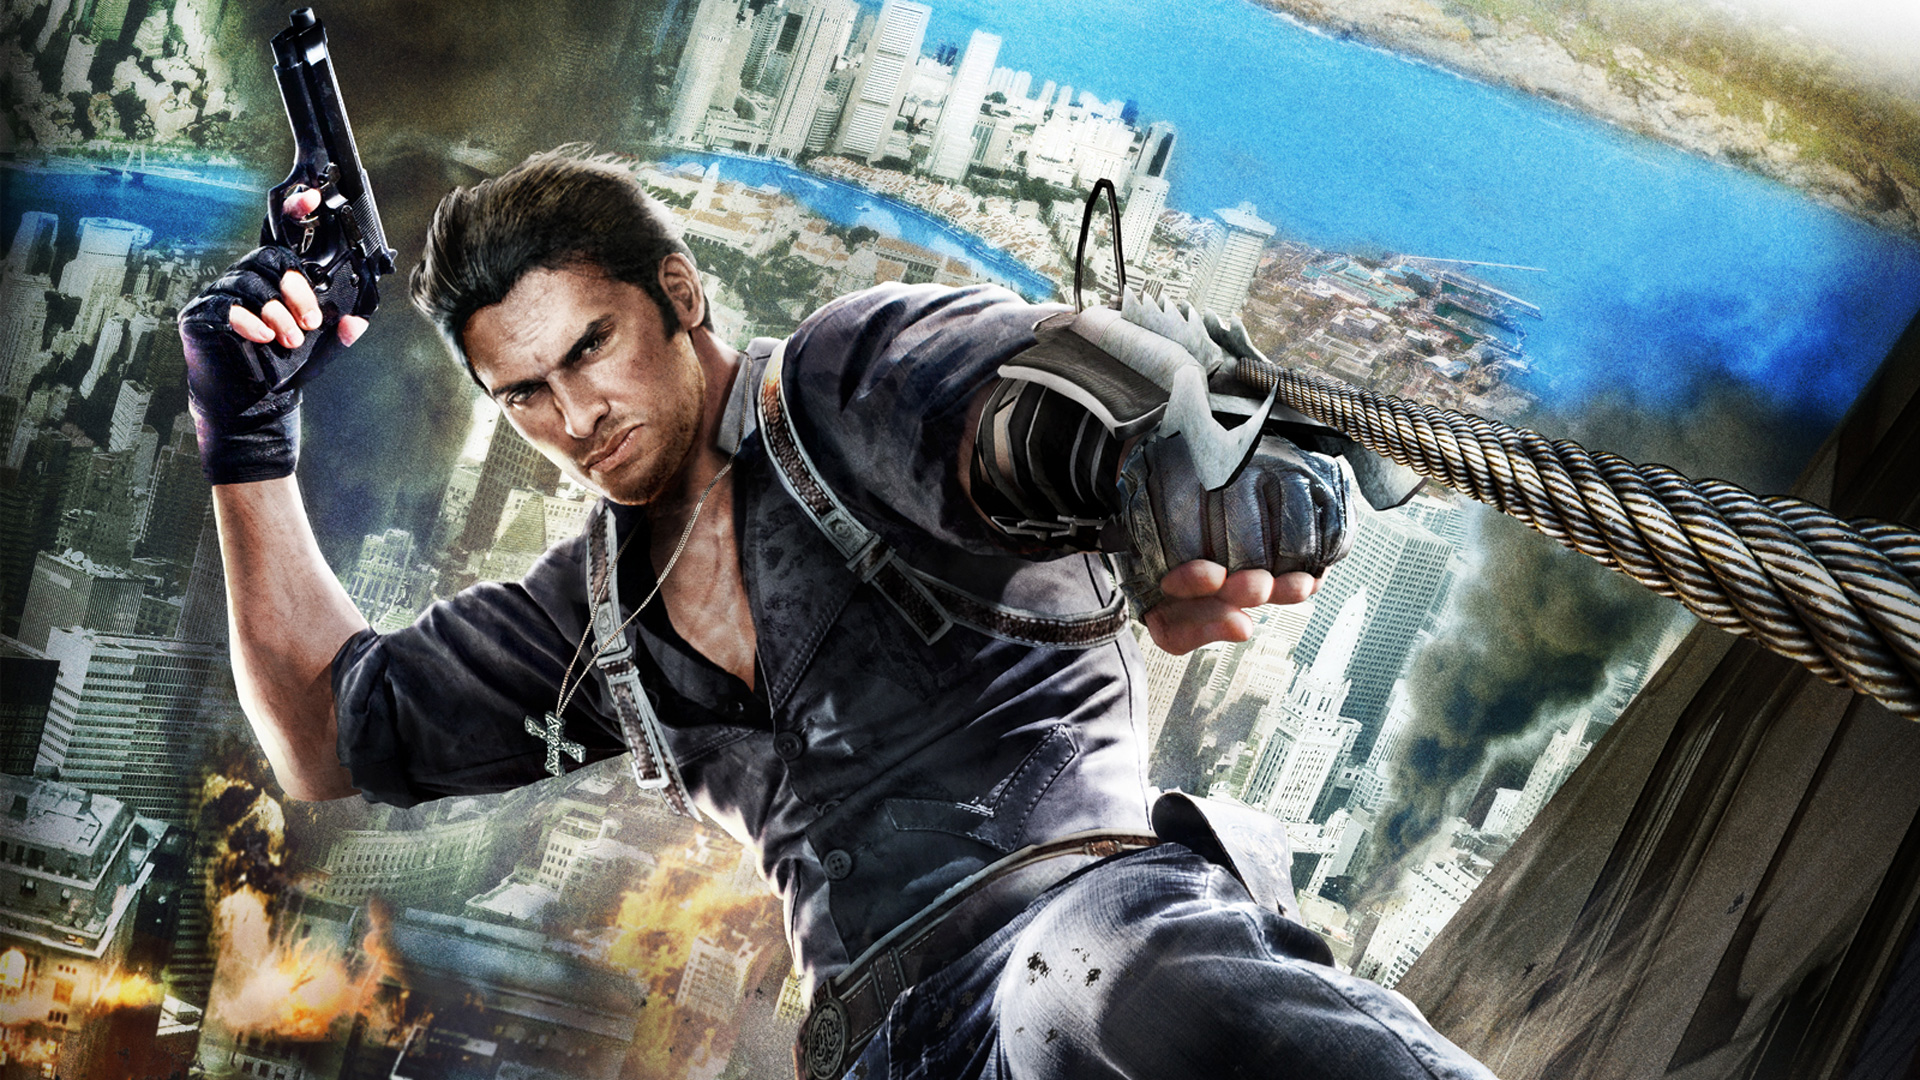 Free Just Cause 2 Wallpaper in 1920x1080